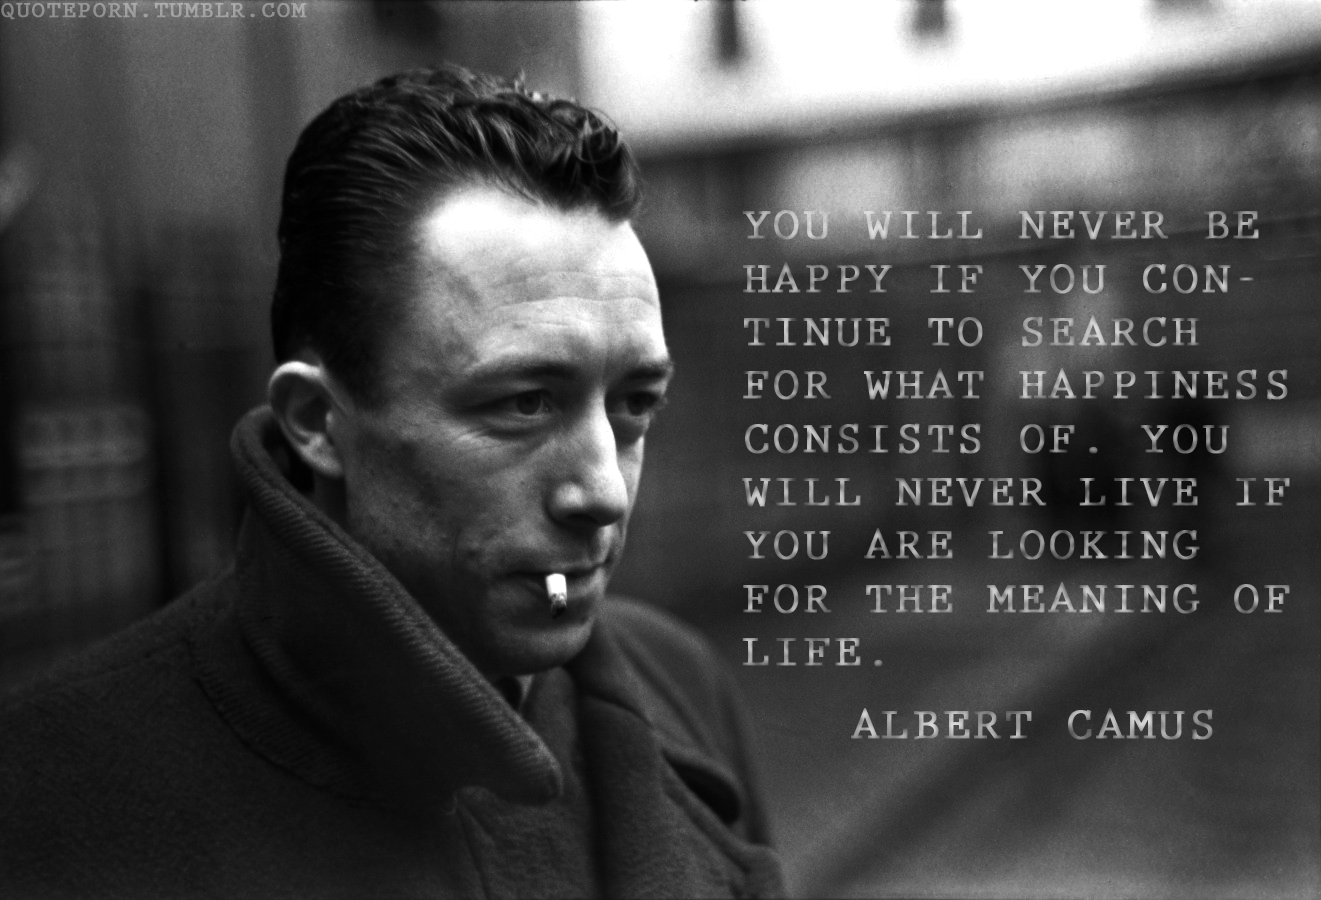 You Will Never Be Happy If You Continue To Search For What Happiness Consists Of Albert Camus 1321x900 Camus Quotes Albert Camus Quotes Albert Camus